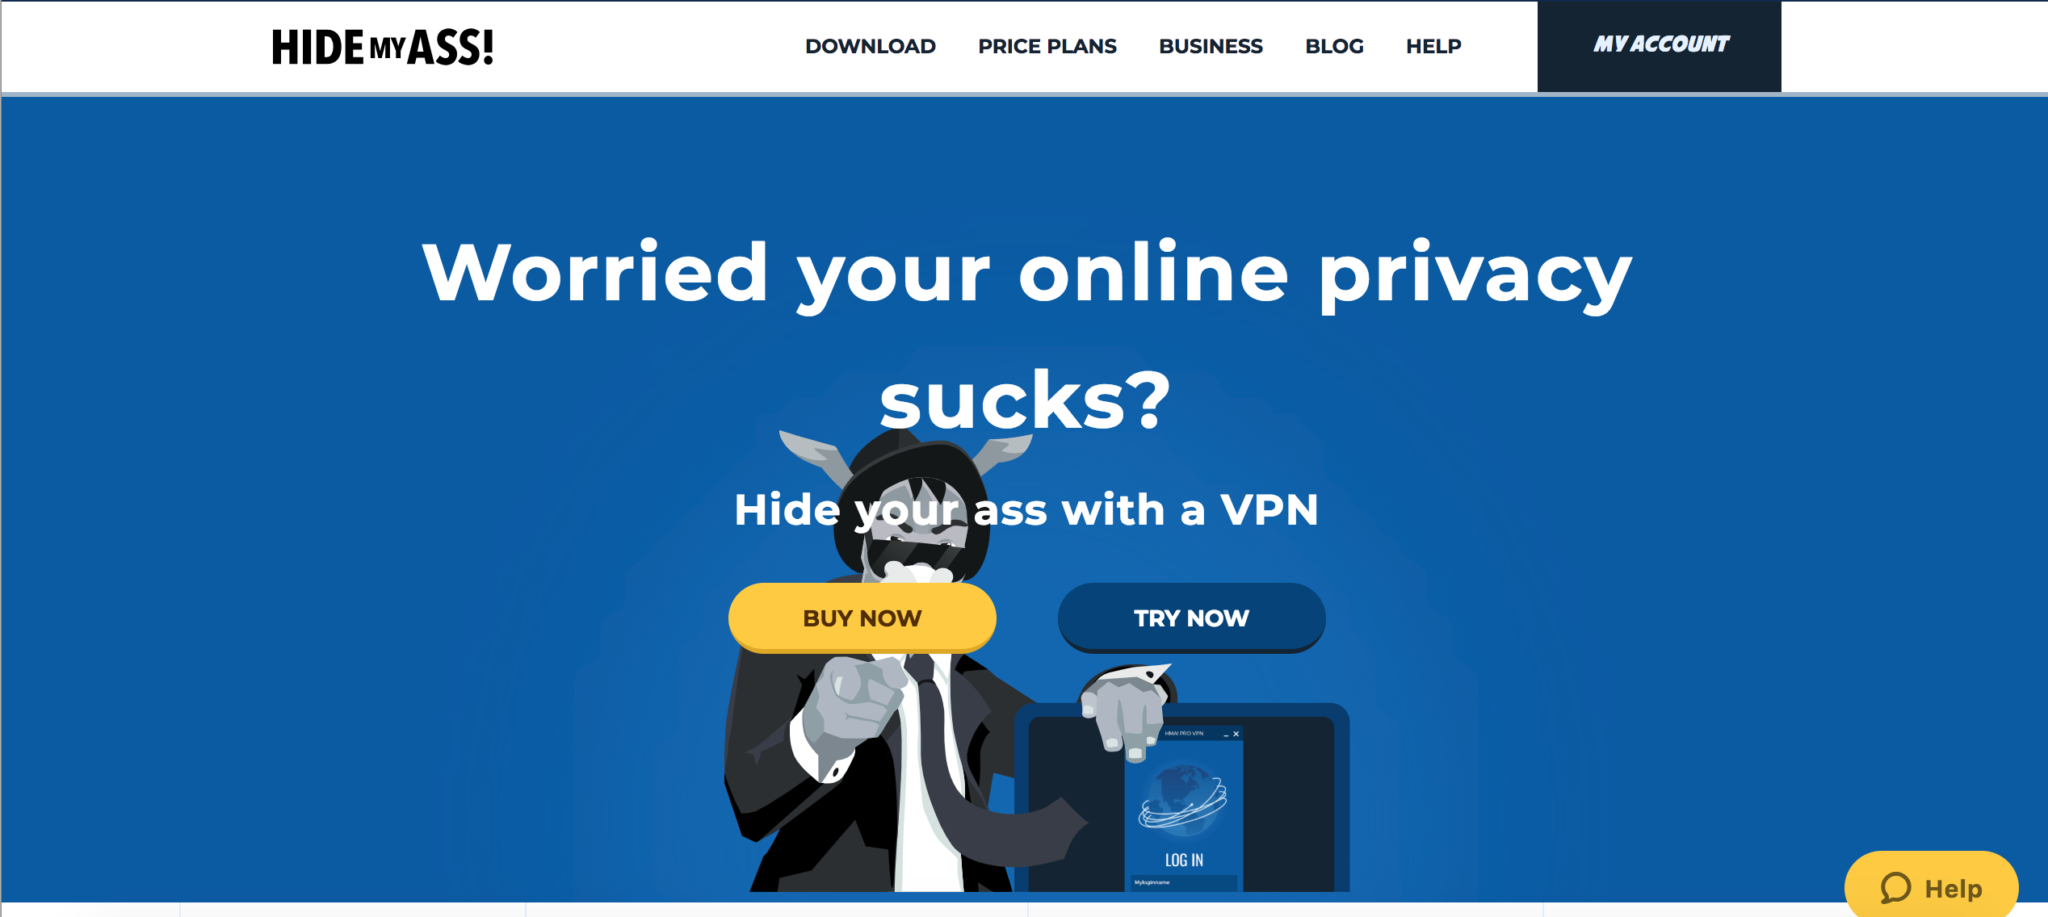 Best Budget Vpn Hide My Ass Deals